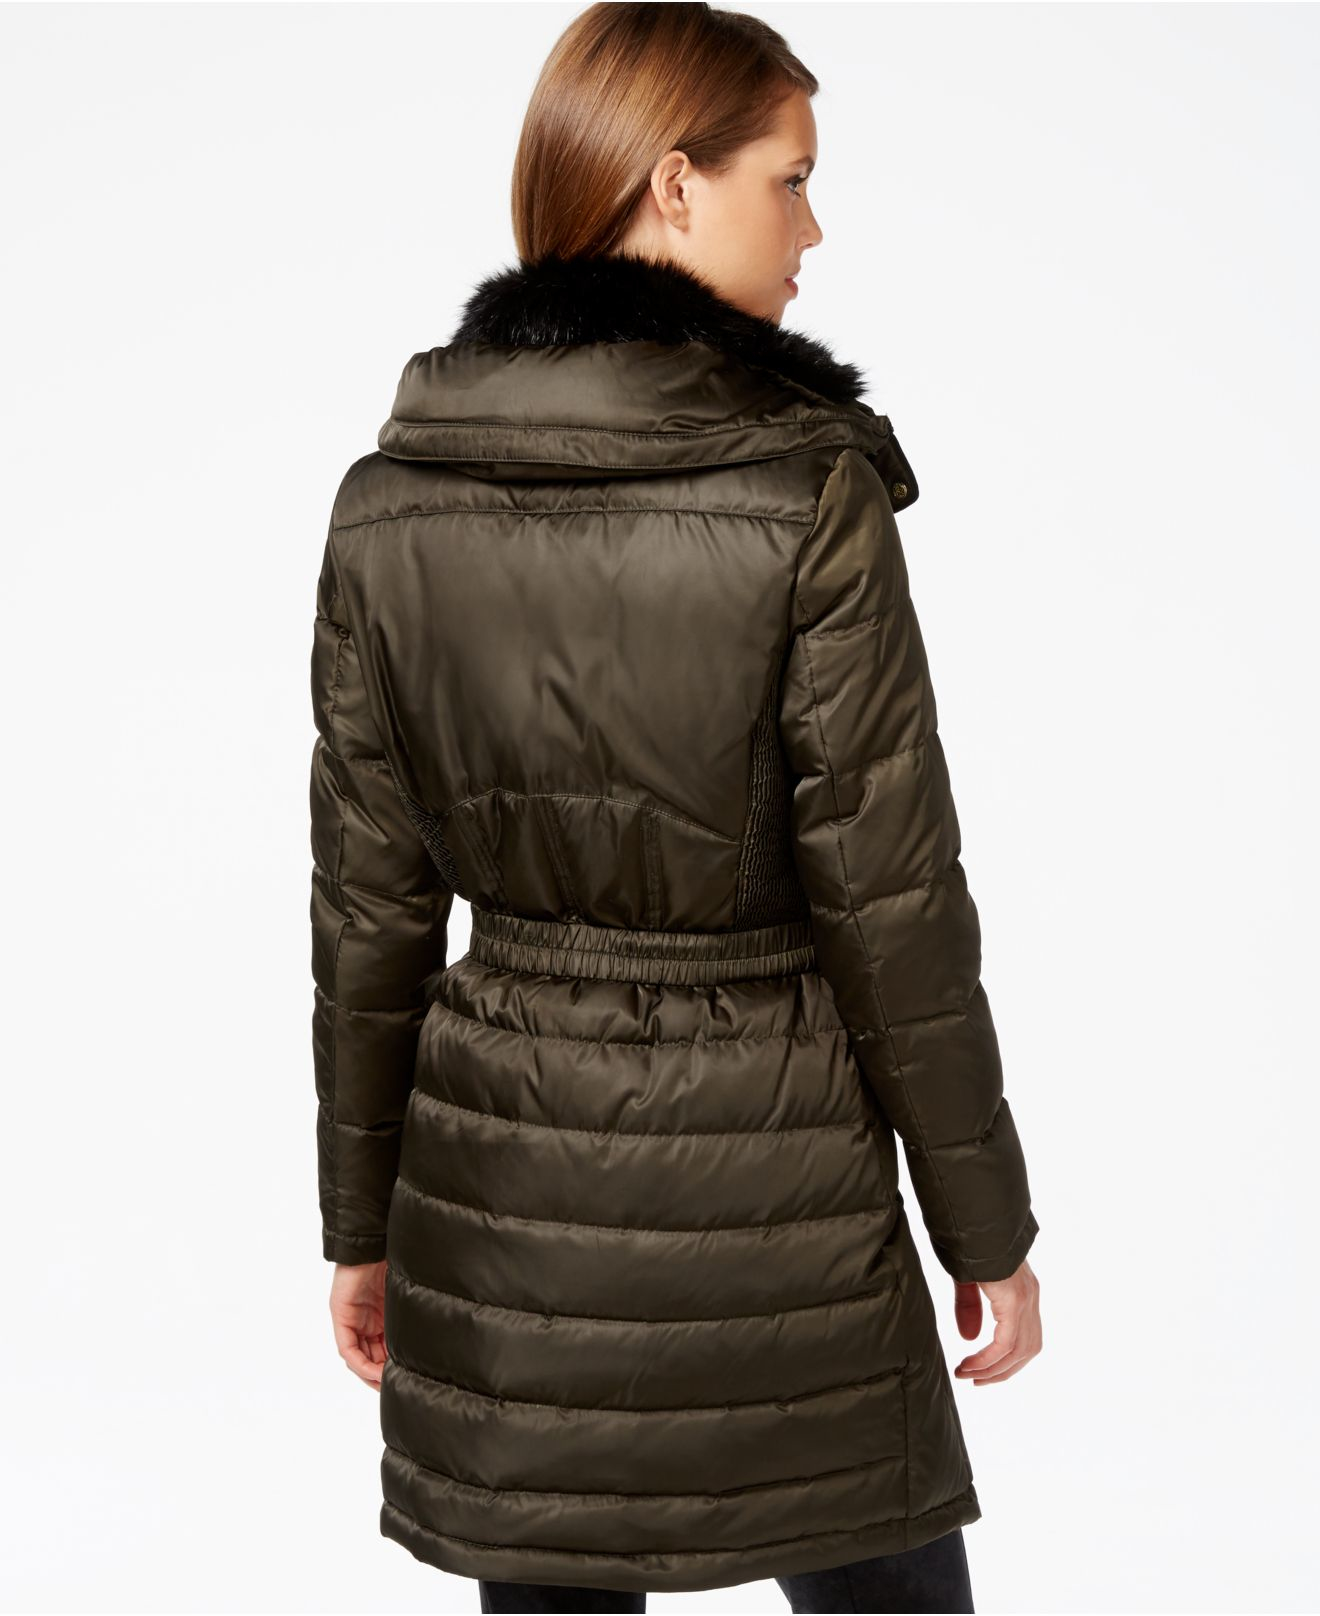 Vince camuto Faux-fur-lined Quilted Puffer Coat in Green | Lyst